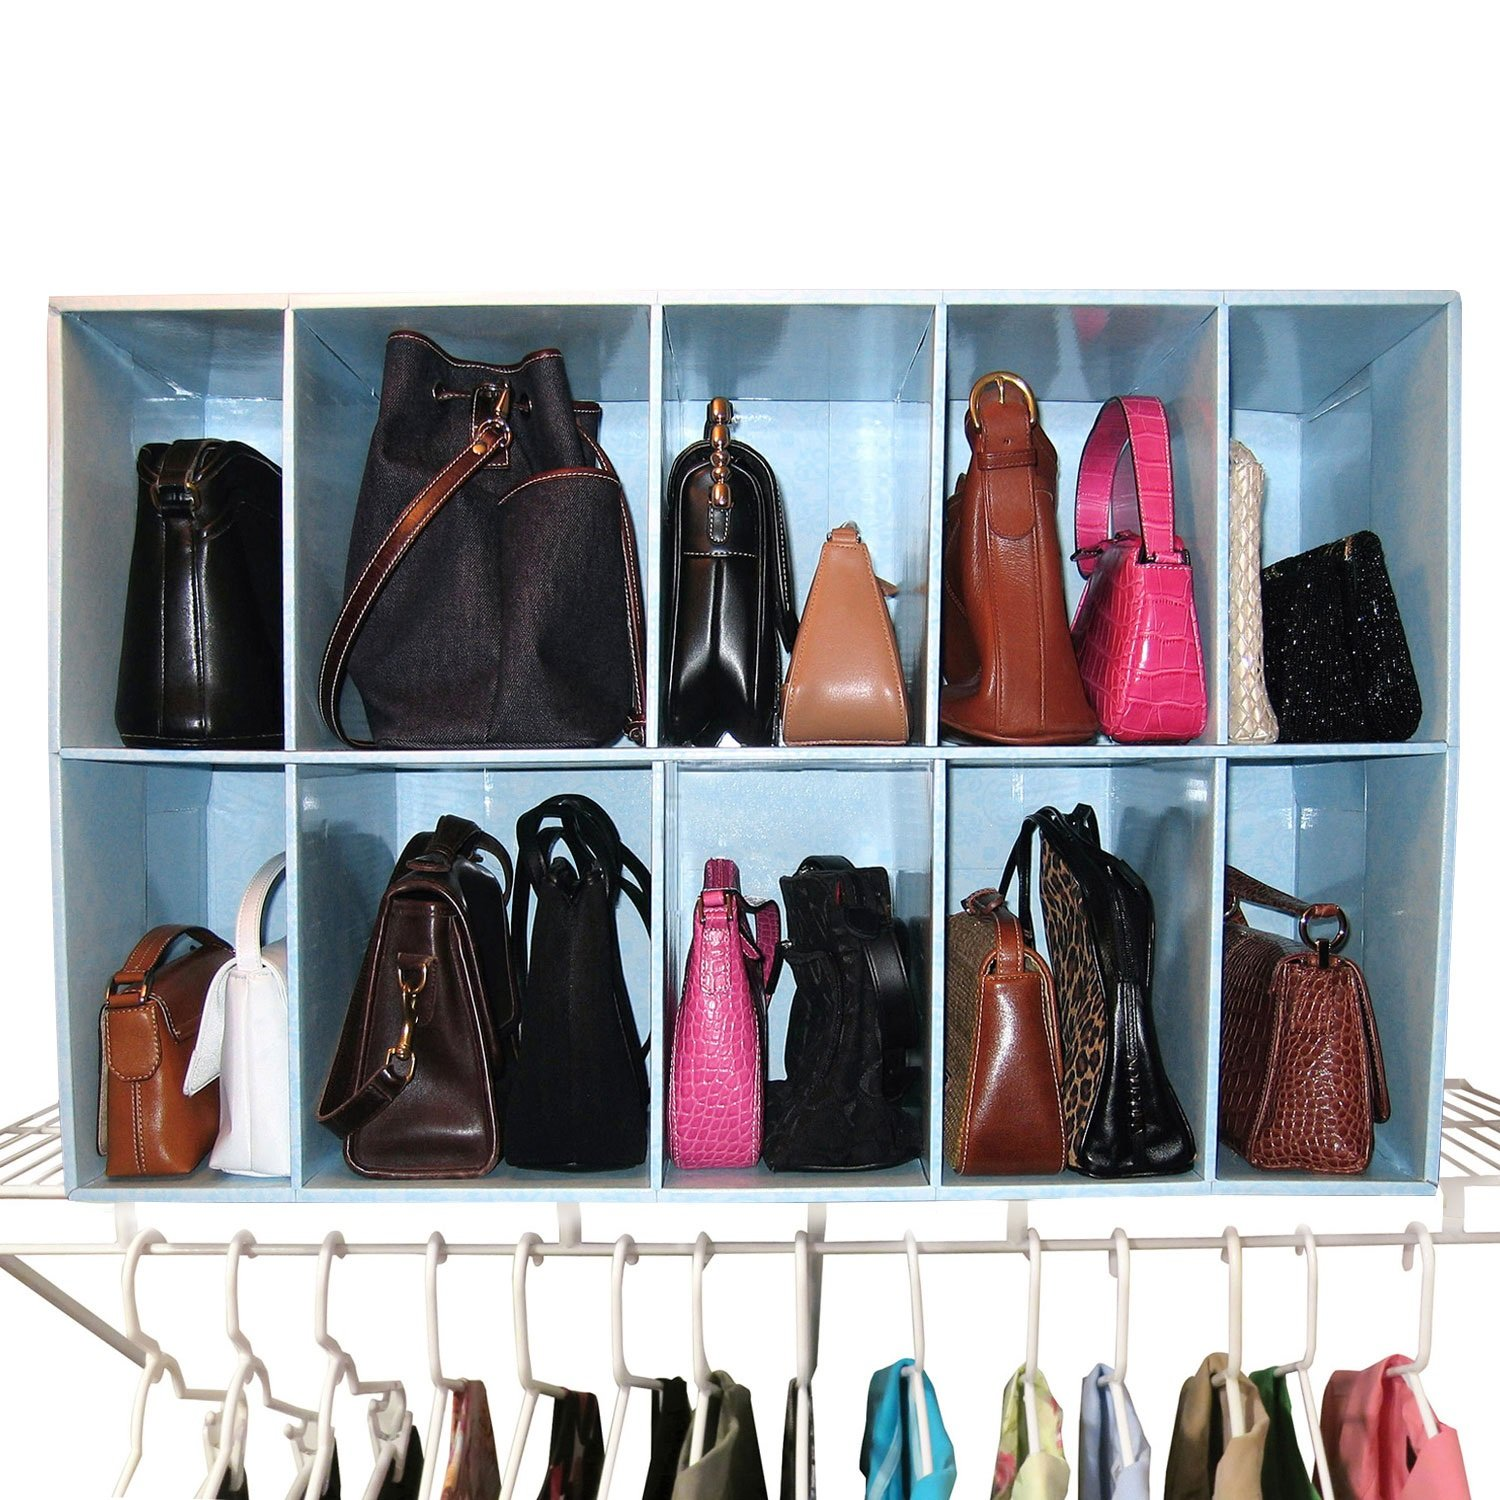 Take a cue from designer boutiques and display your handbags on a high  shelf in your closet. db15d7ce57c7d